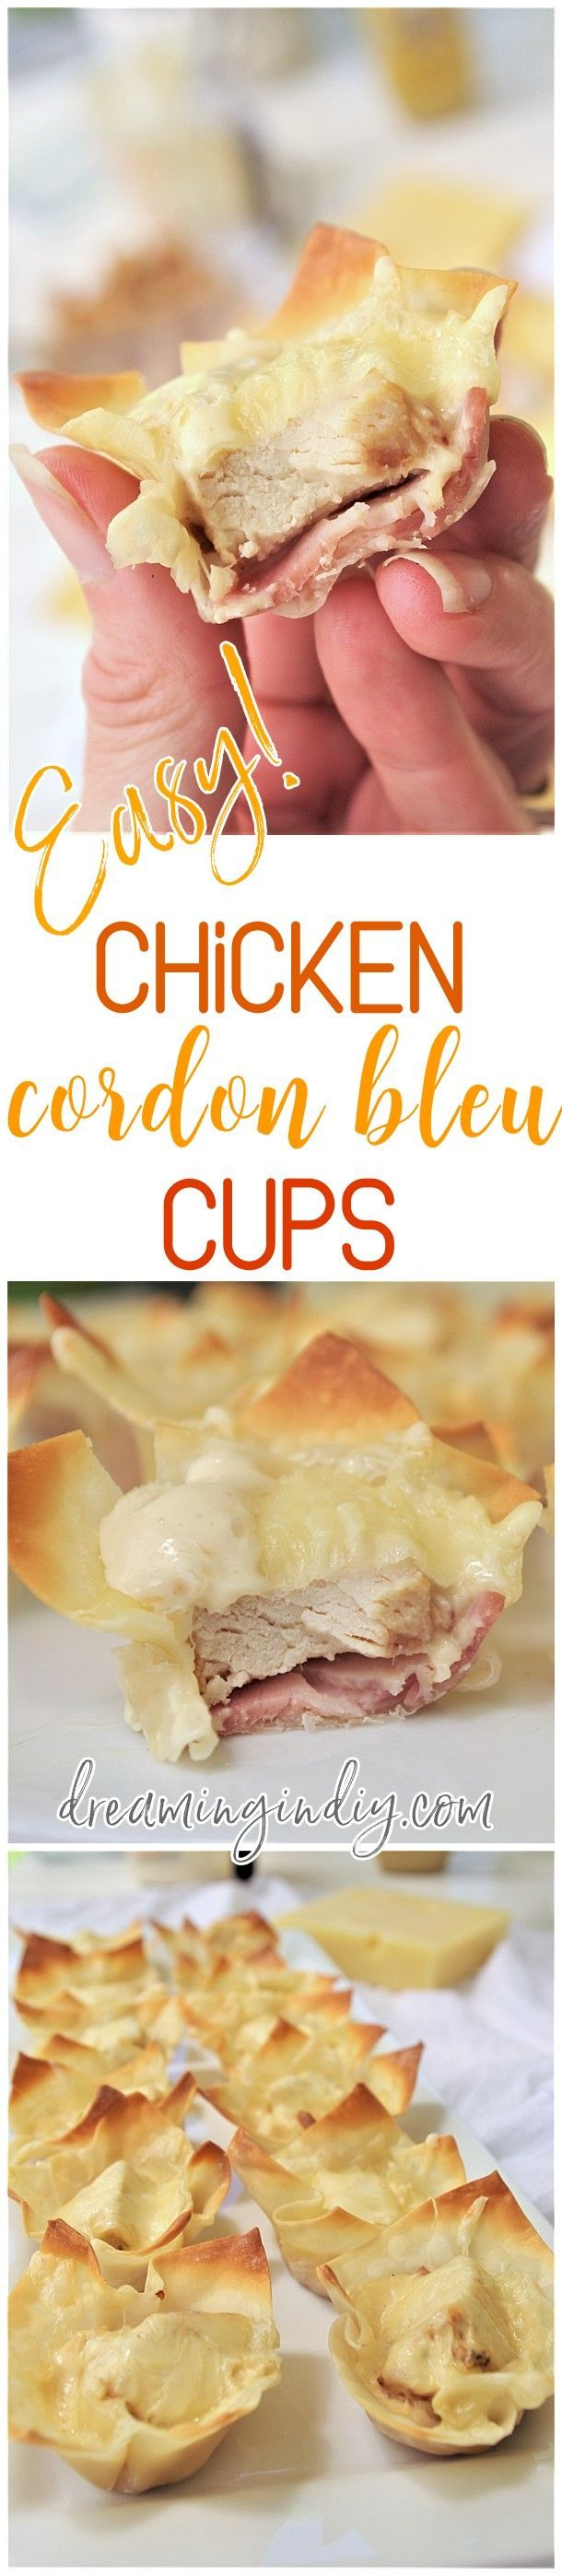 Chicken Cordon Bleu Cups – Easy Yummy Bite Sized Appetizer